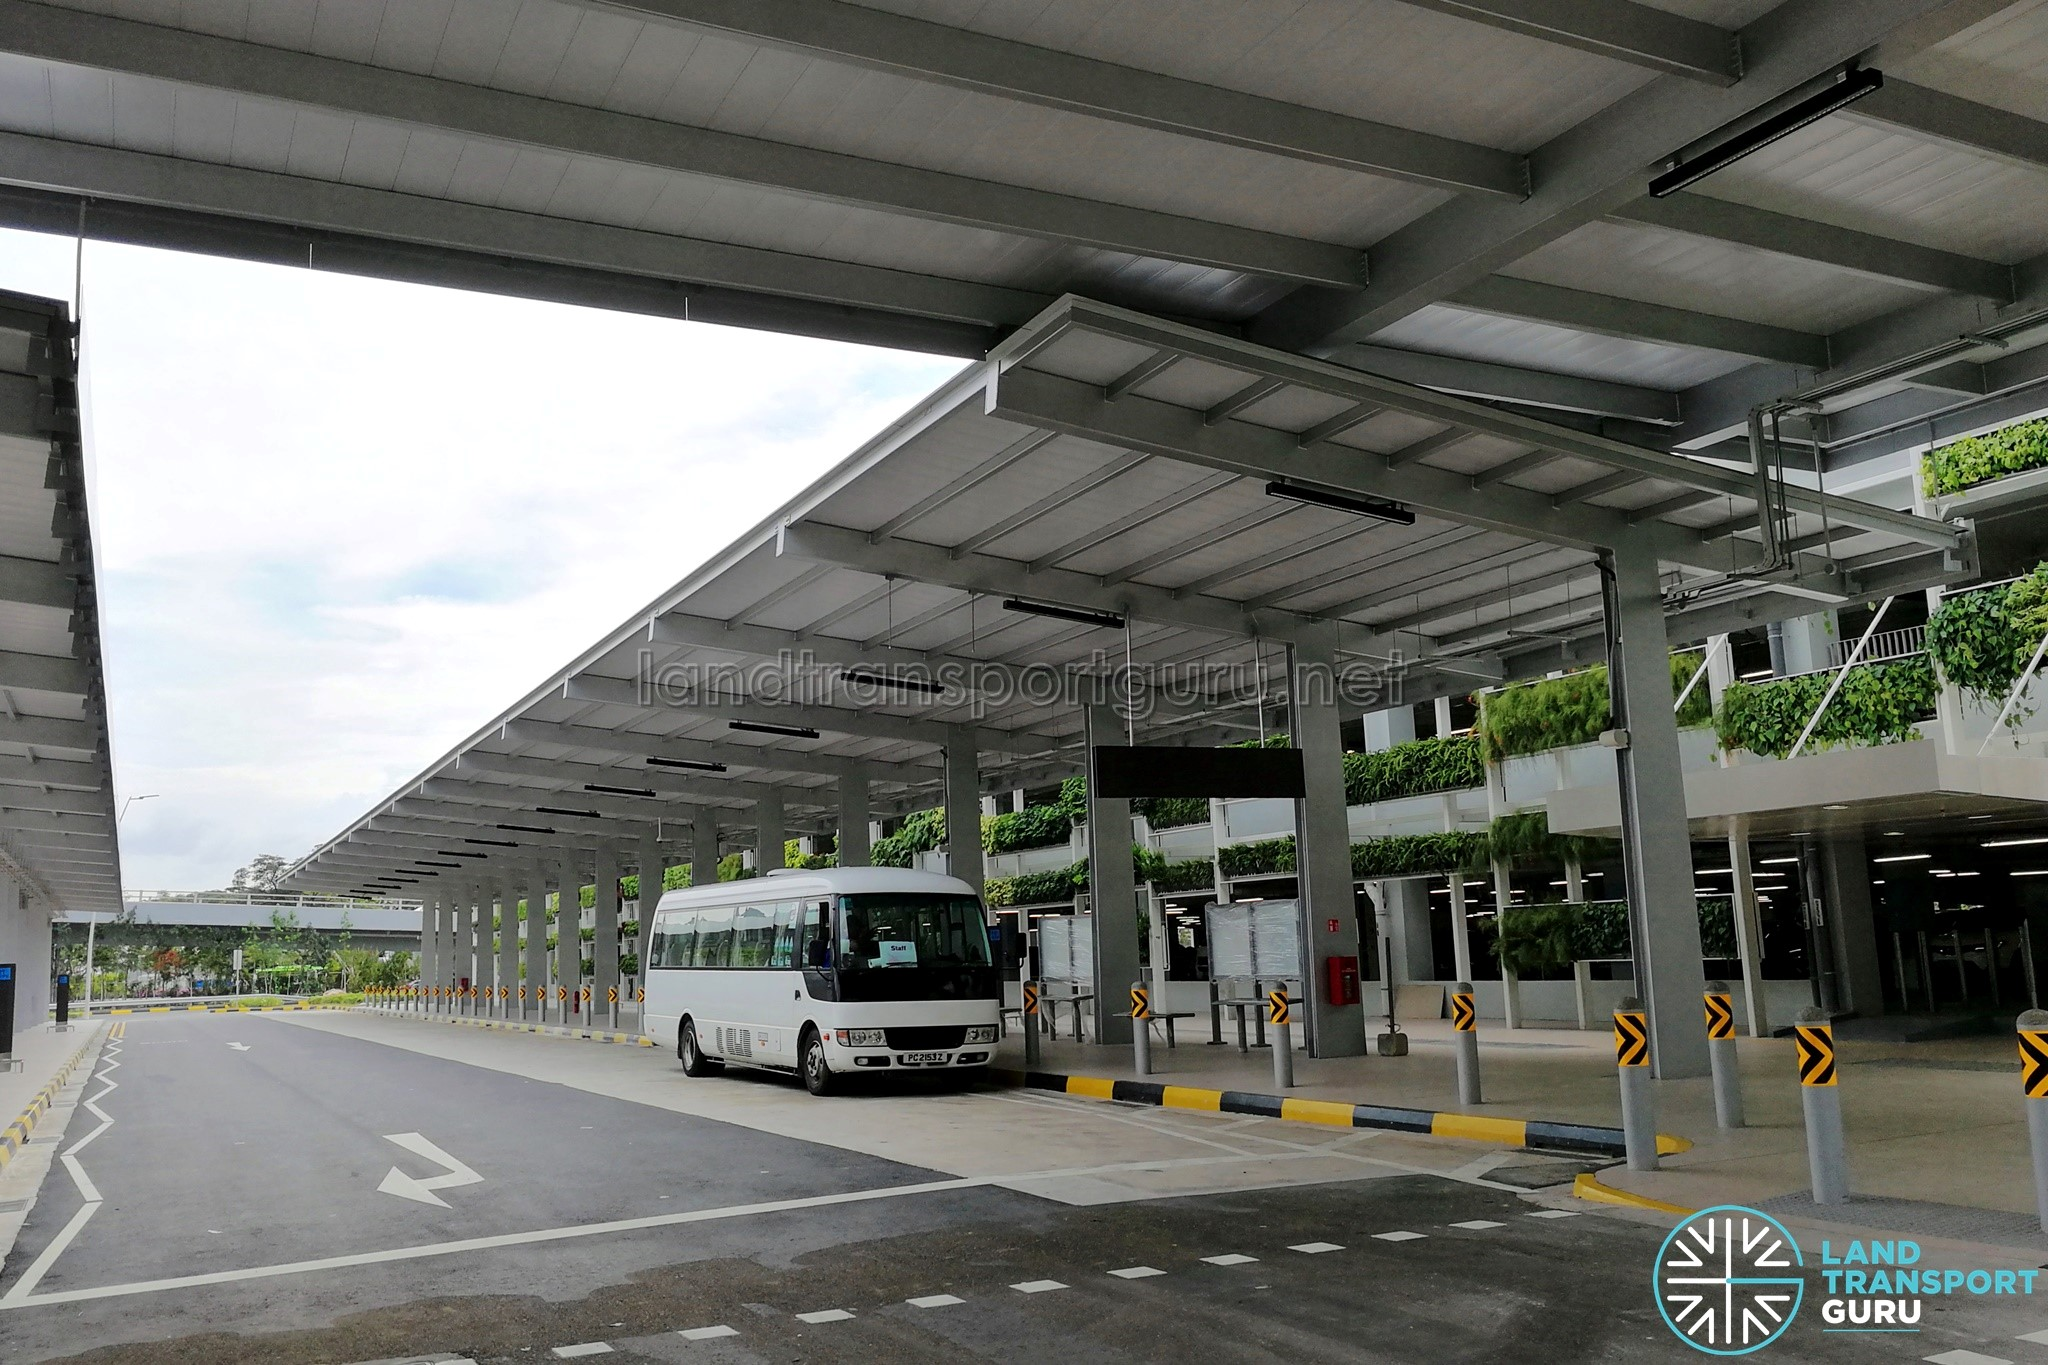 changi airport t4 bus stop aug17 2 land transport guru. Black Bedroom Furniture Sets. Home Design Ideas